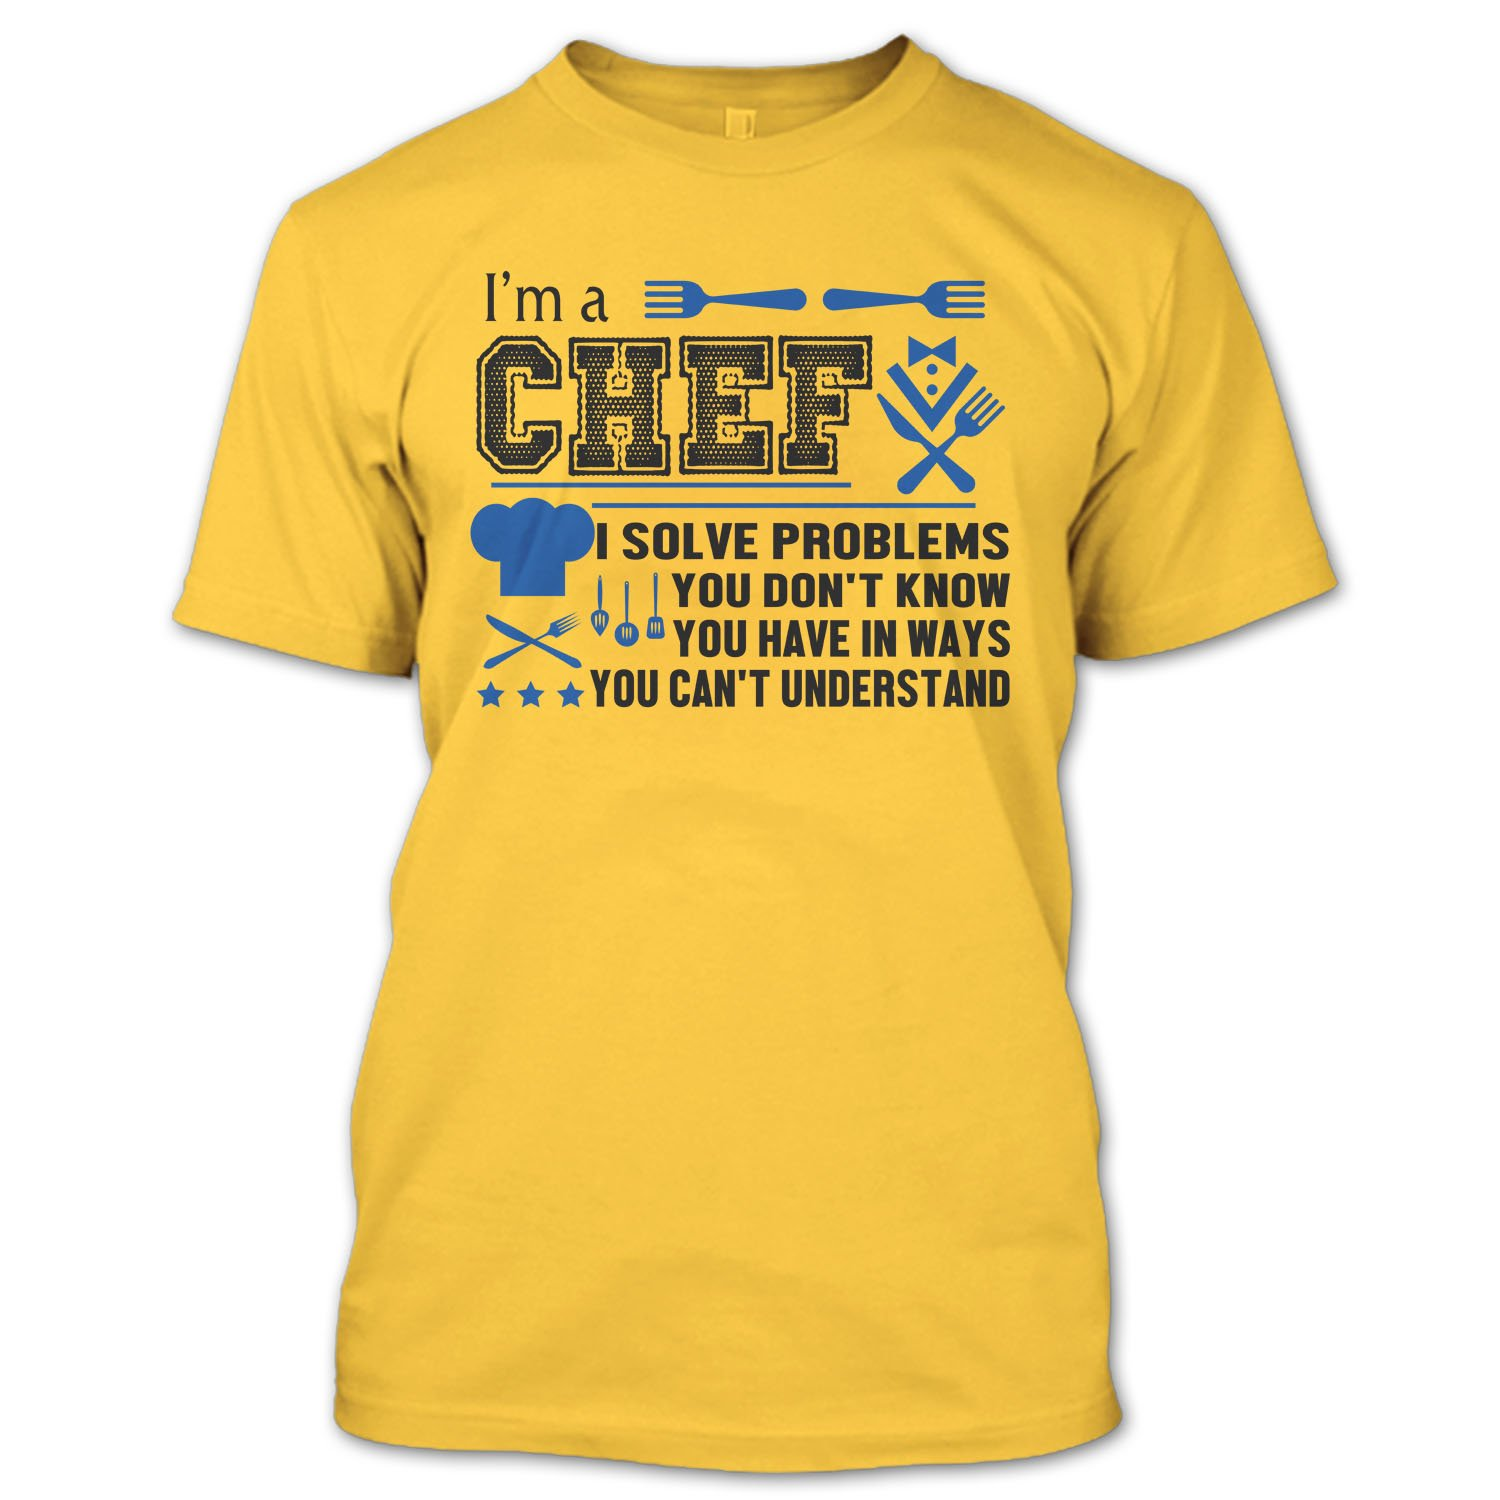 I'm A Chef T Shirt, You Can't Understand T Shirt You Can' t Understand T Shirt